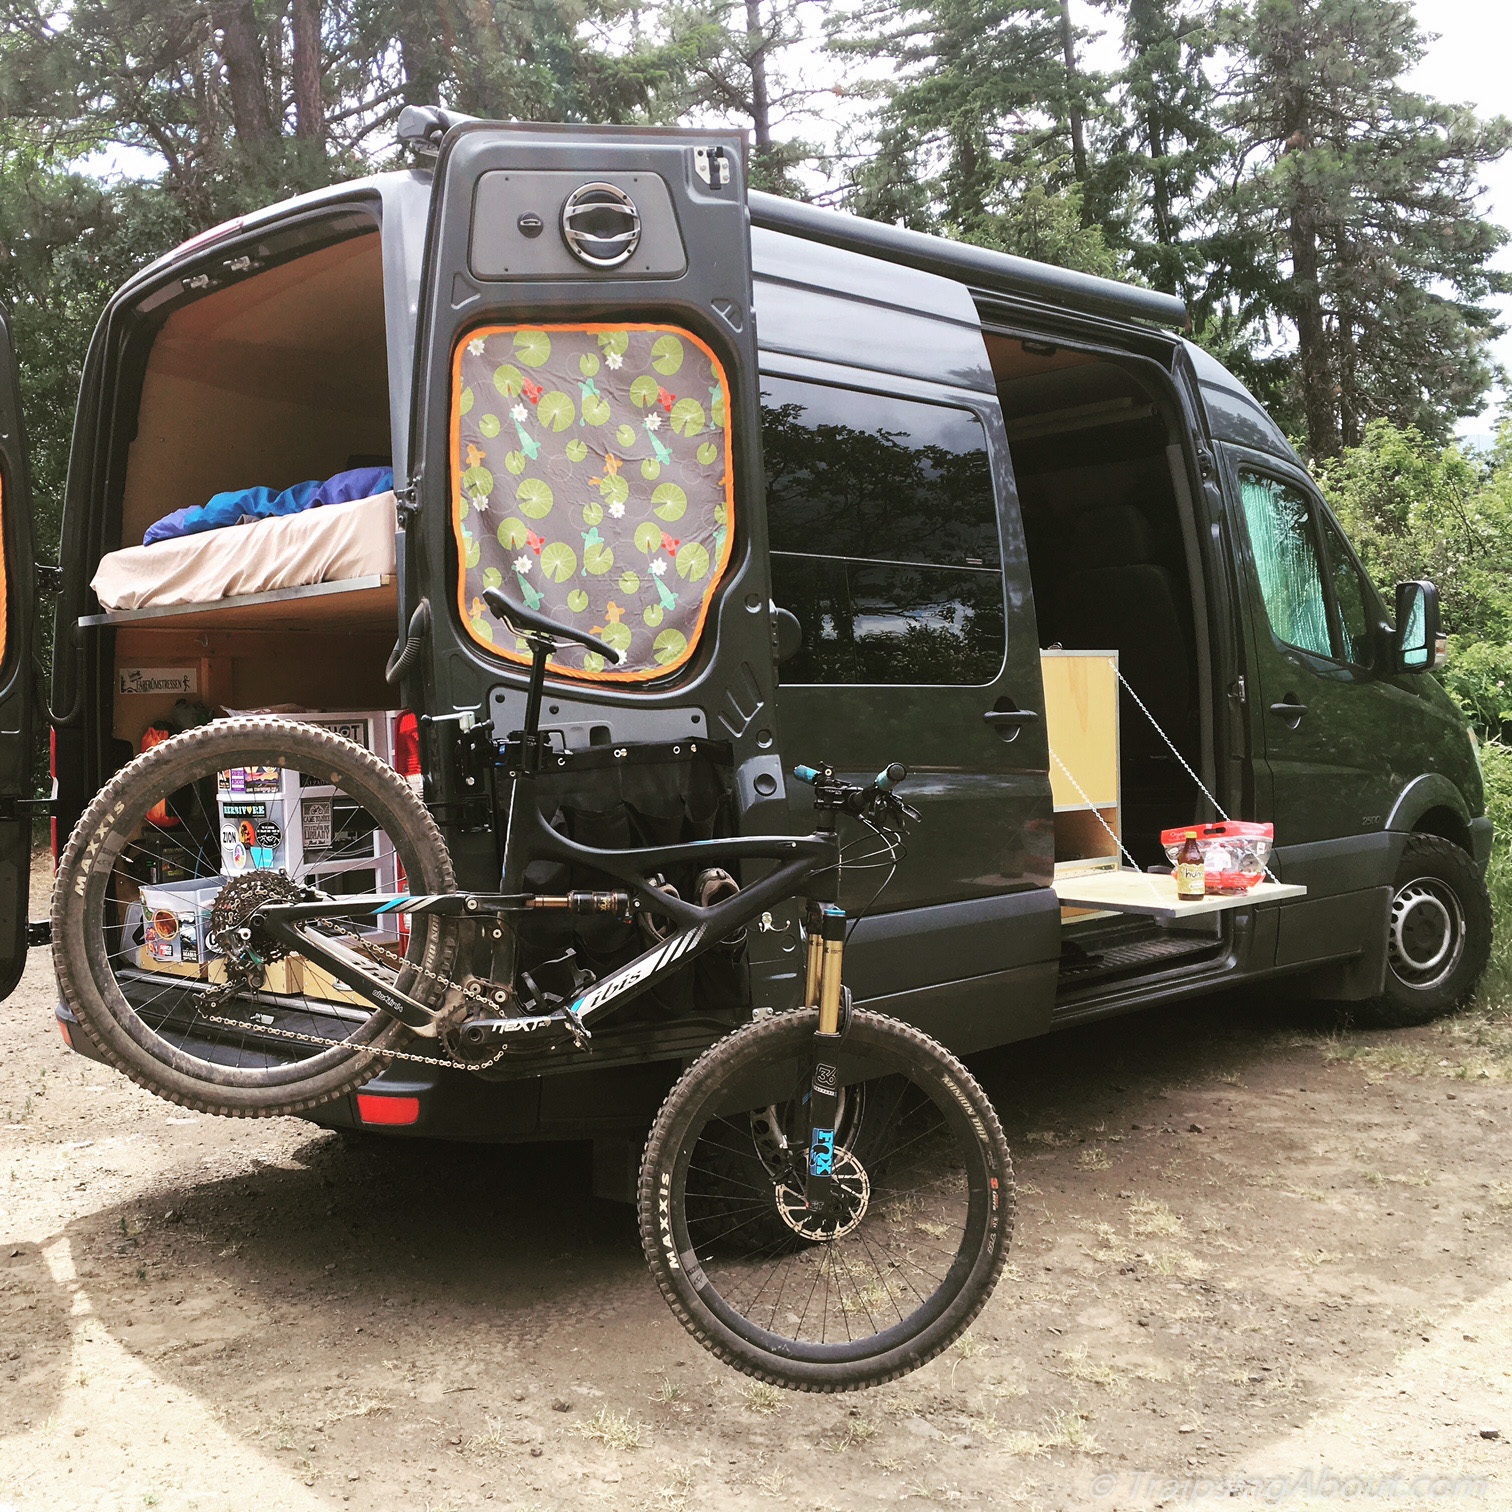 The adventure mobile our diy sprinter camper van bicycle hauler bike repair stand and side table showing their utility after a mtb ride solutioingenieria Images